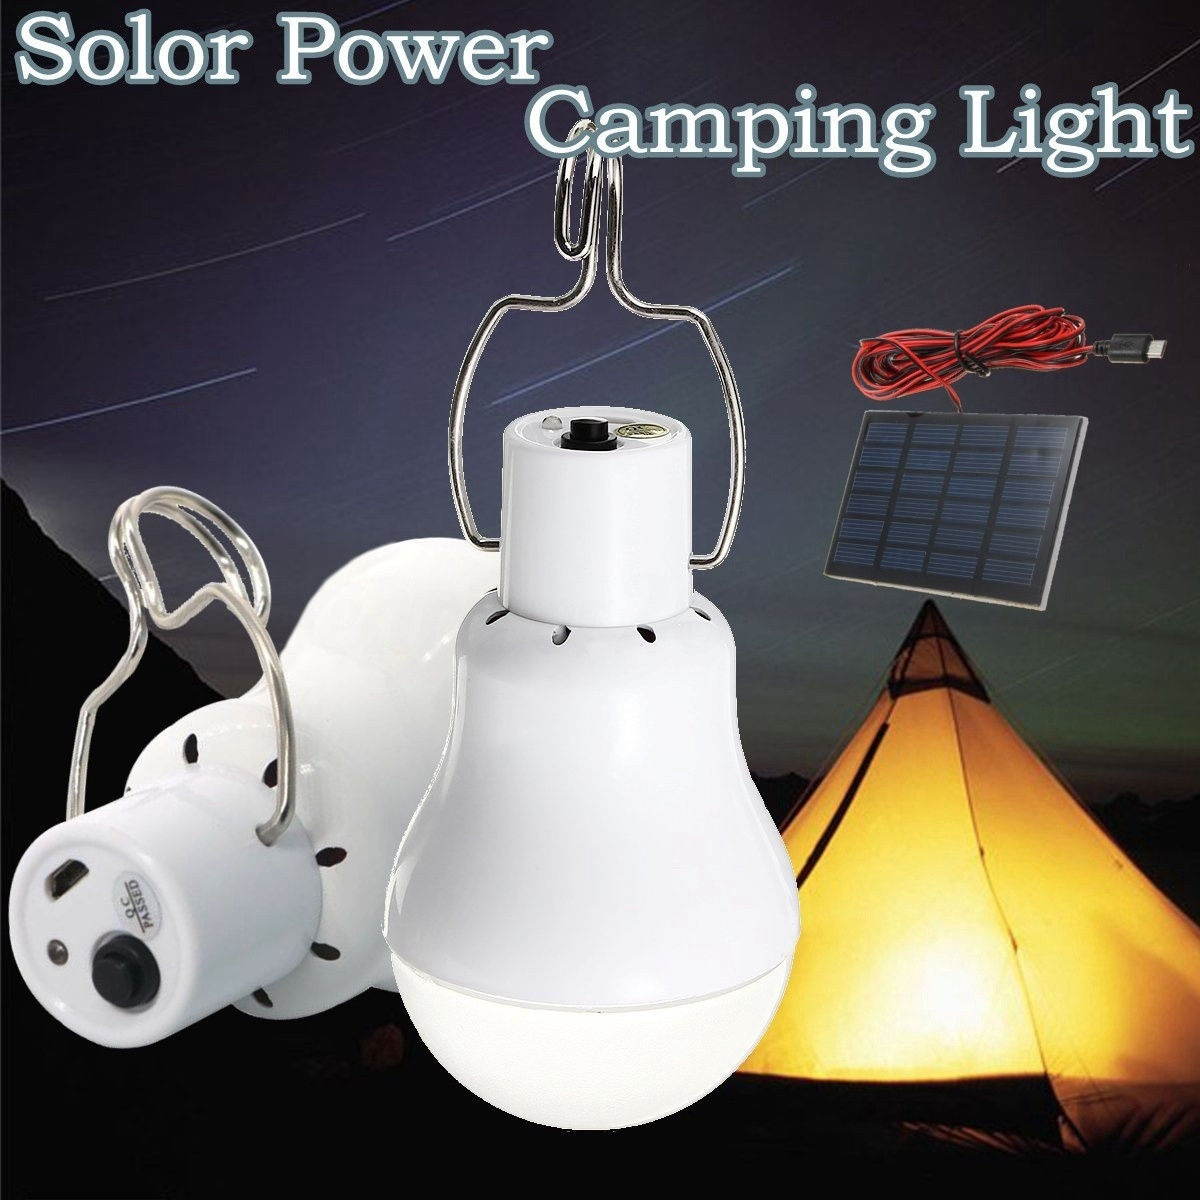 Portable Led Bulb Outdoor Indoor Solar Powered LED Camping Lighting System Solar Panel